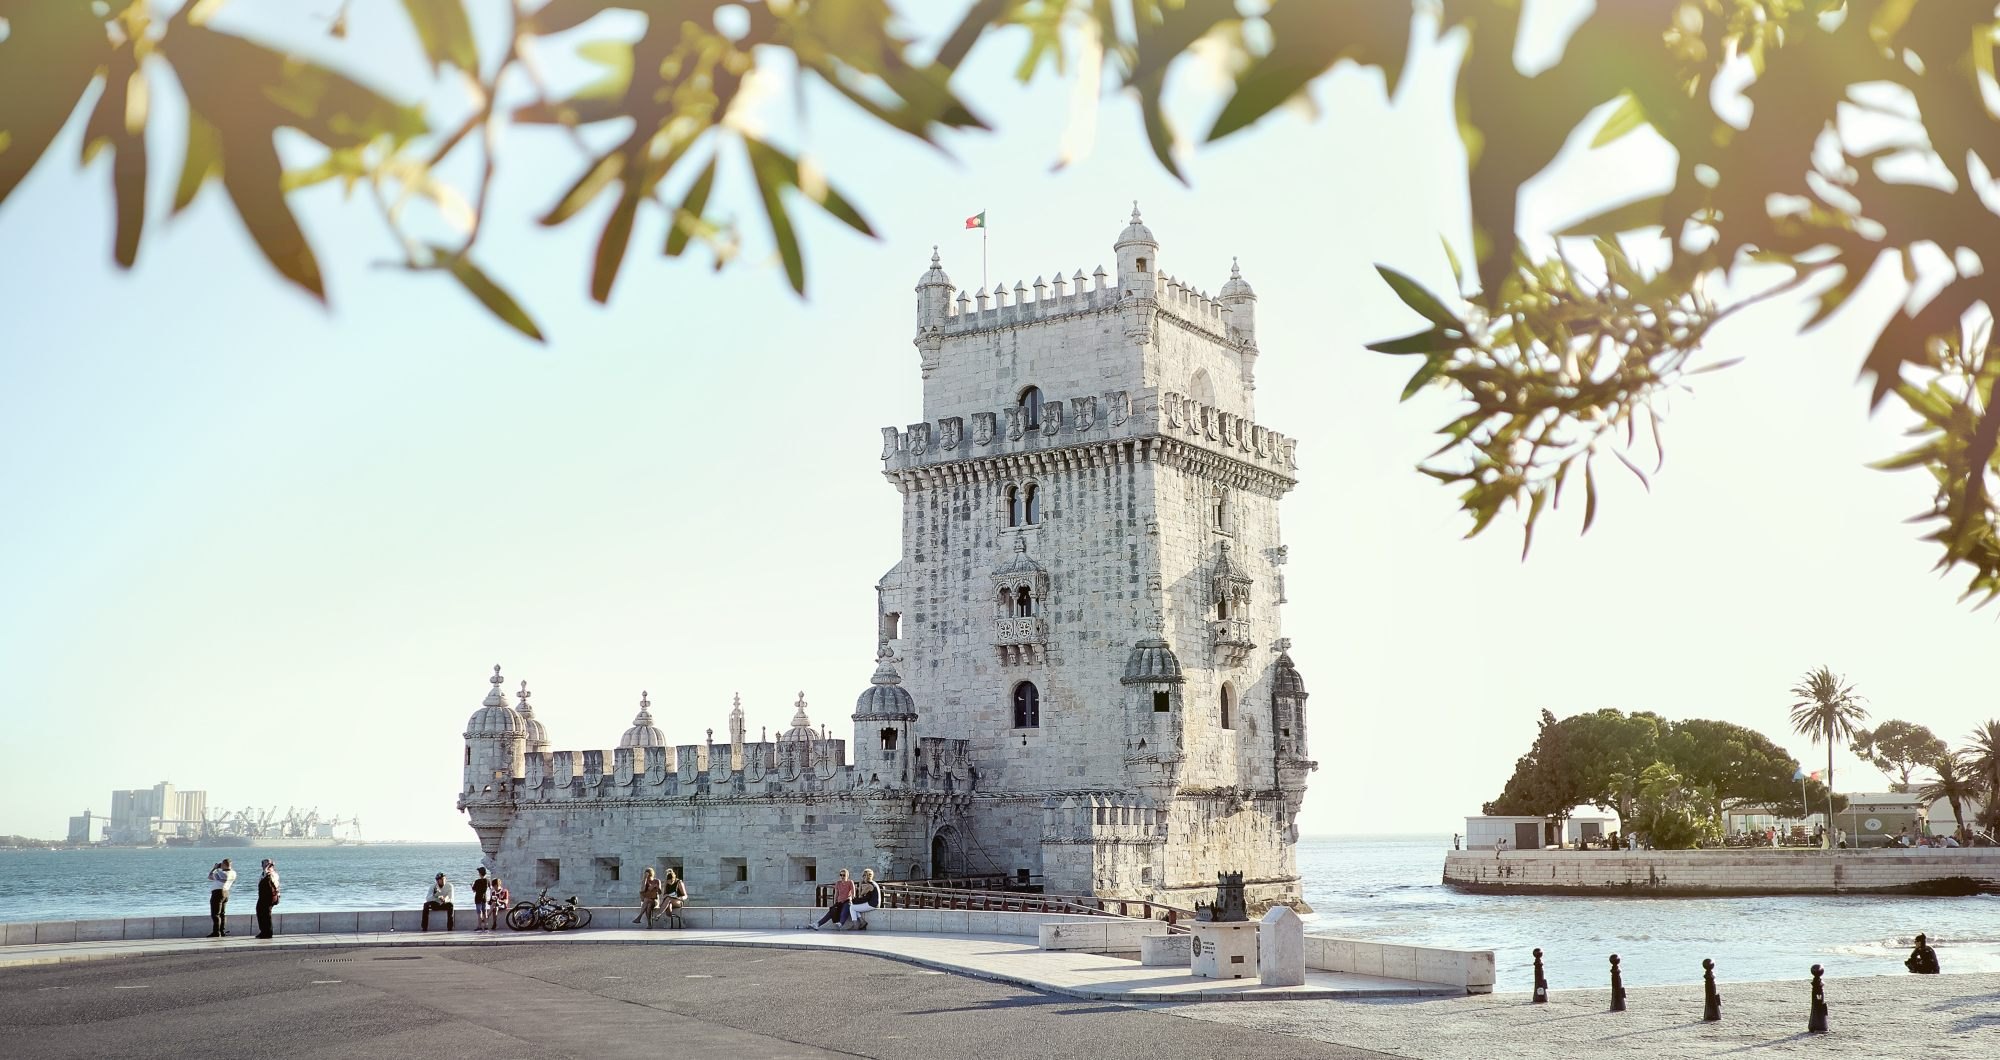 Image Of Building In Lisbon, Portugal